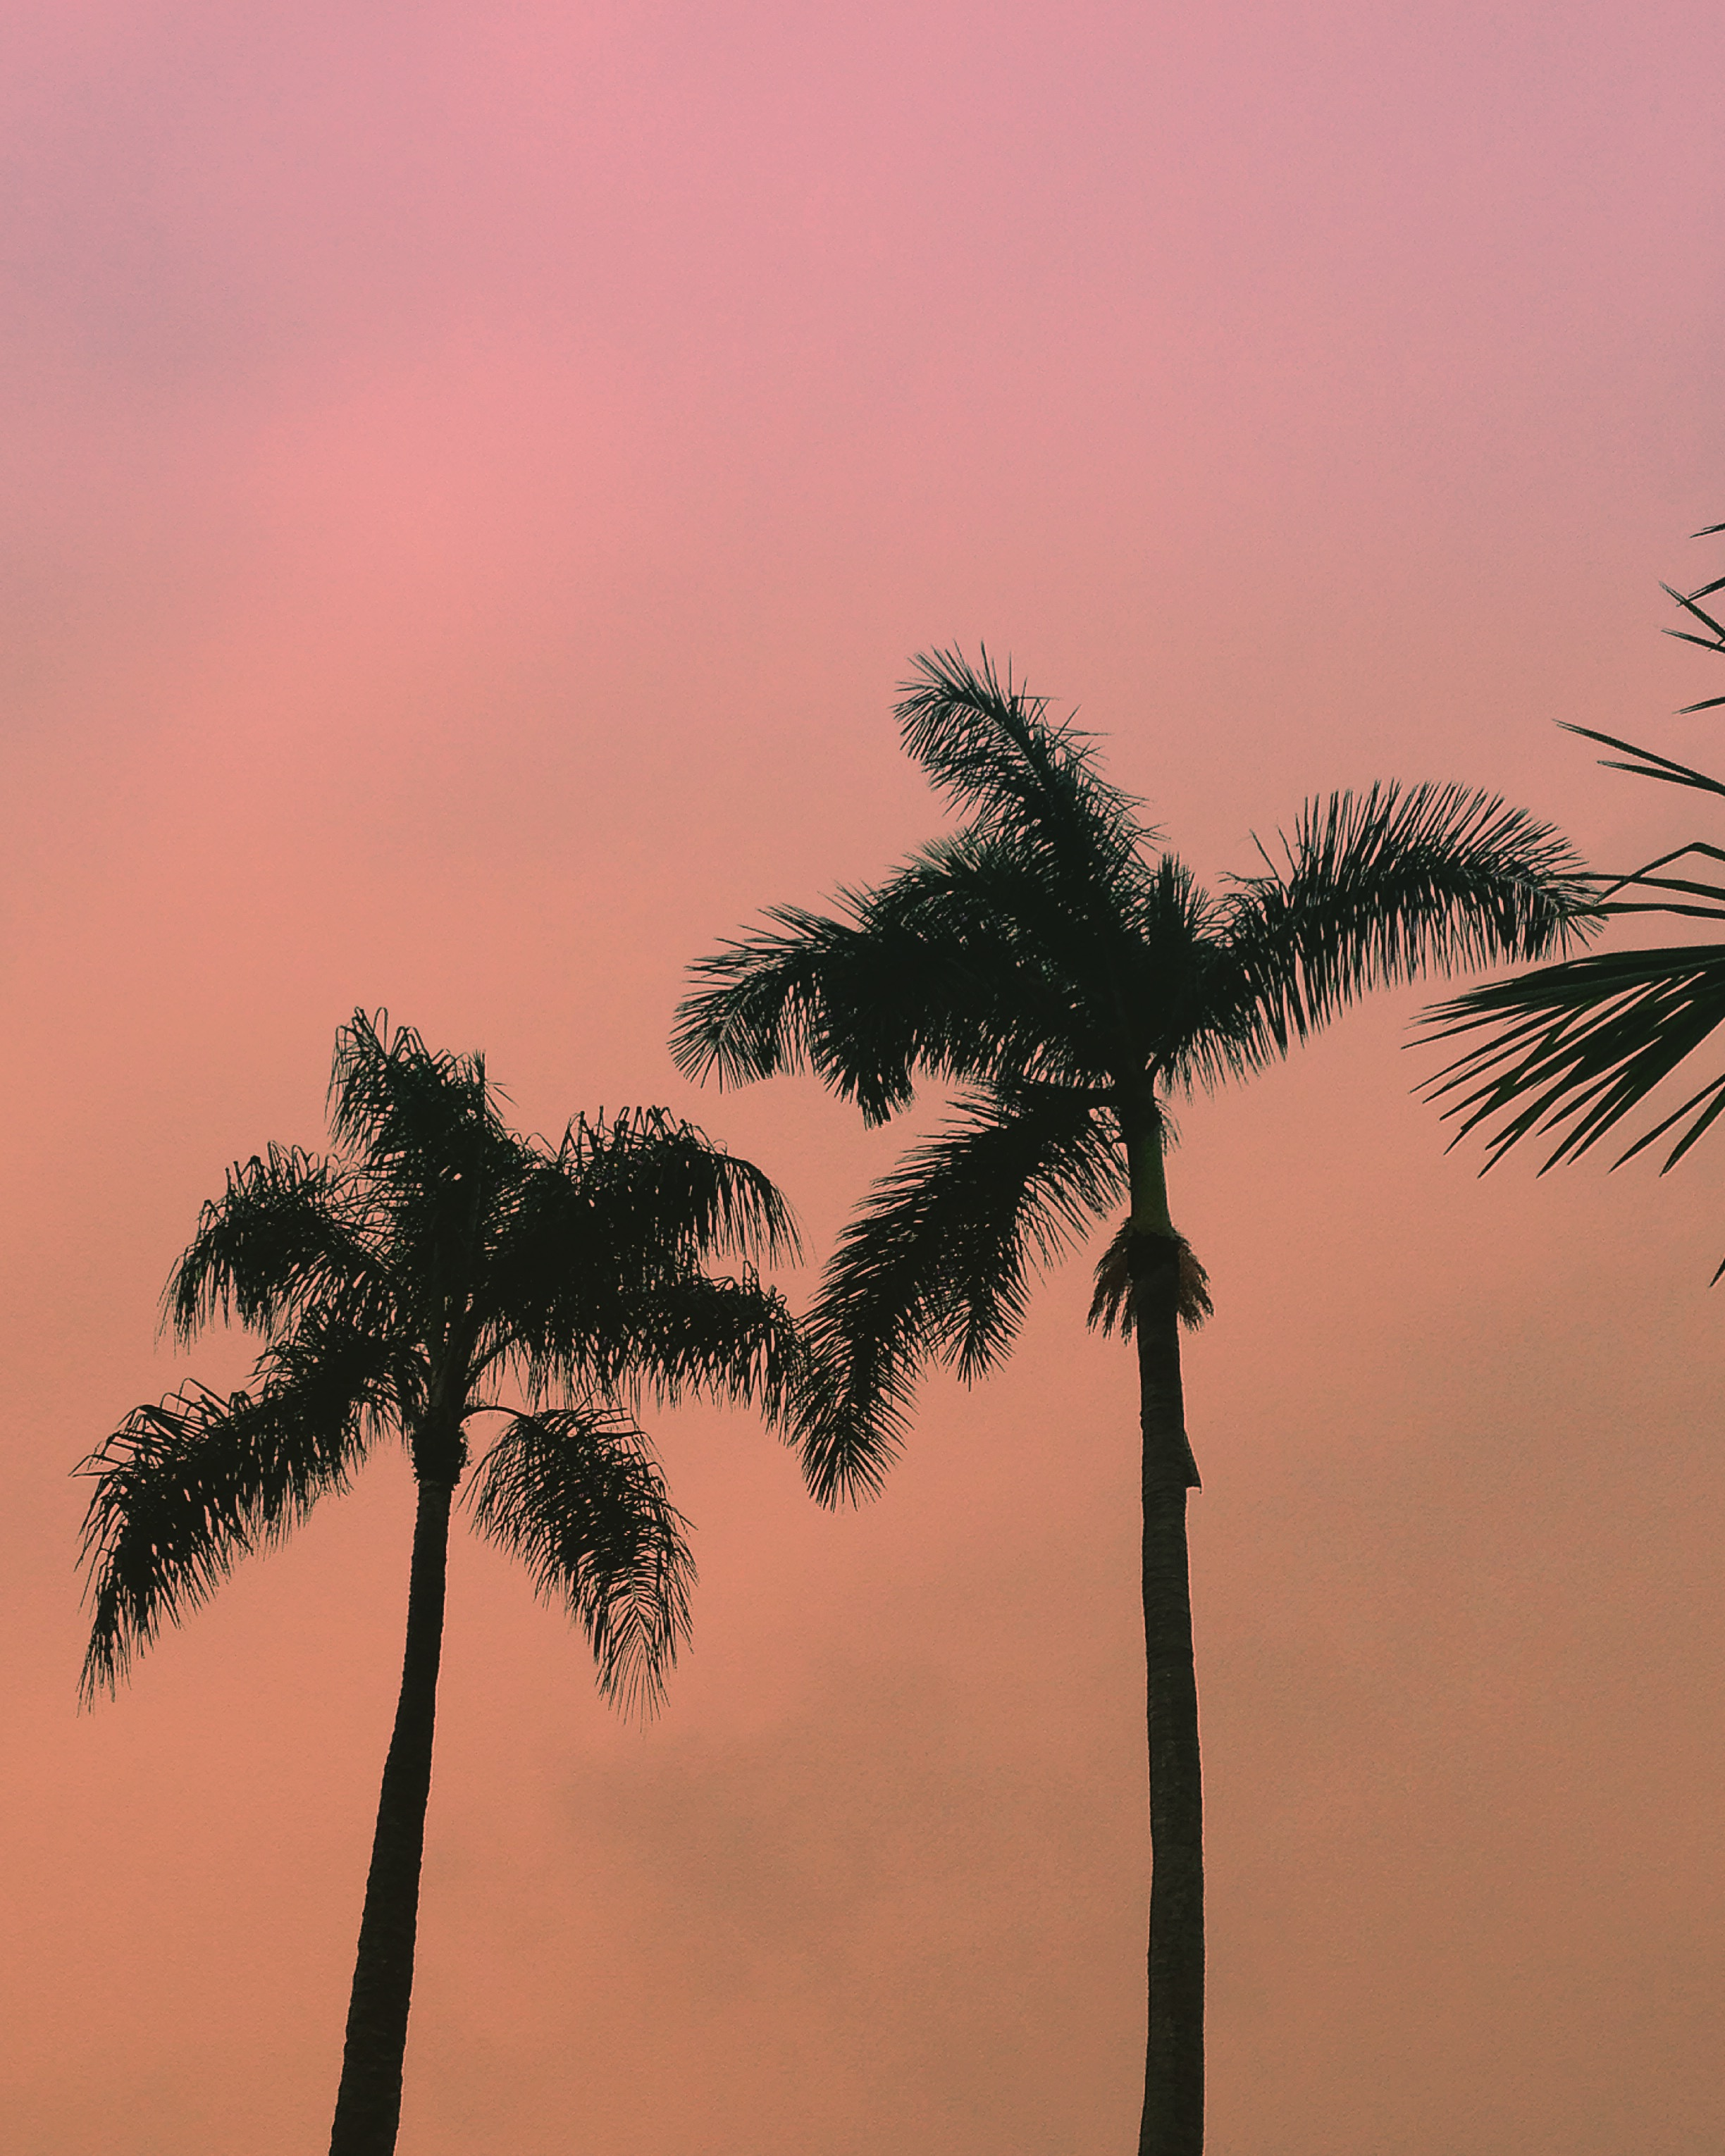 Beach palms at sunset - Mexico Tropical® travel agency.JPG